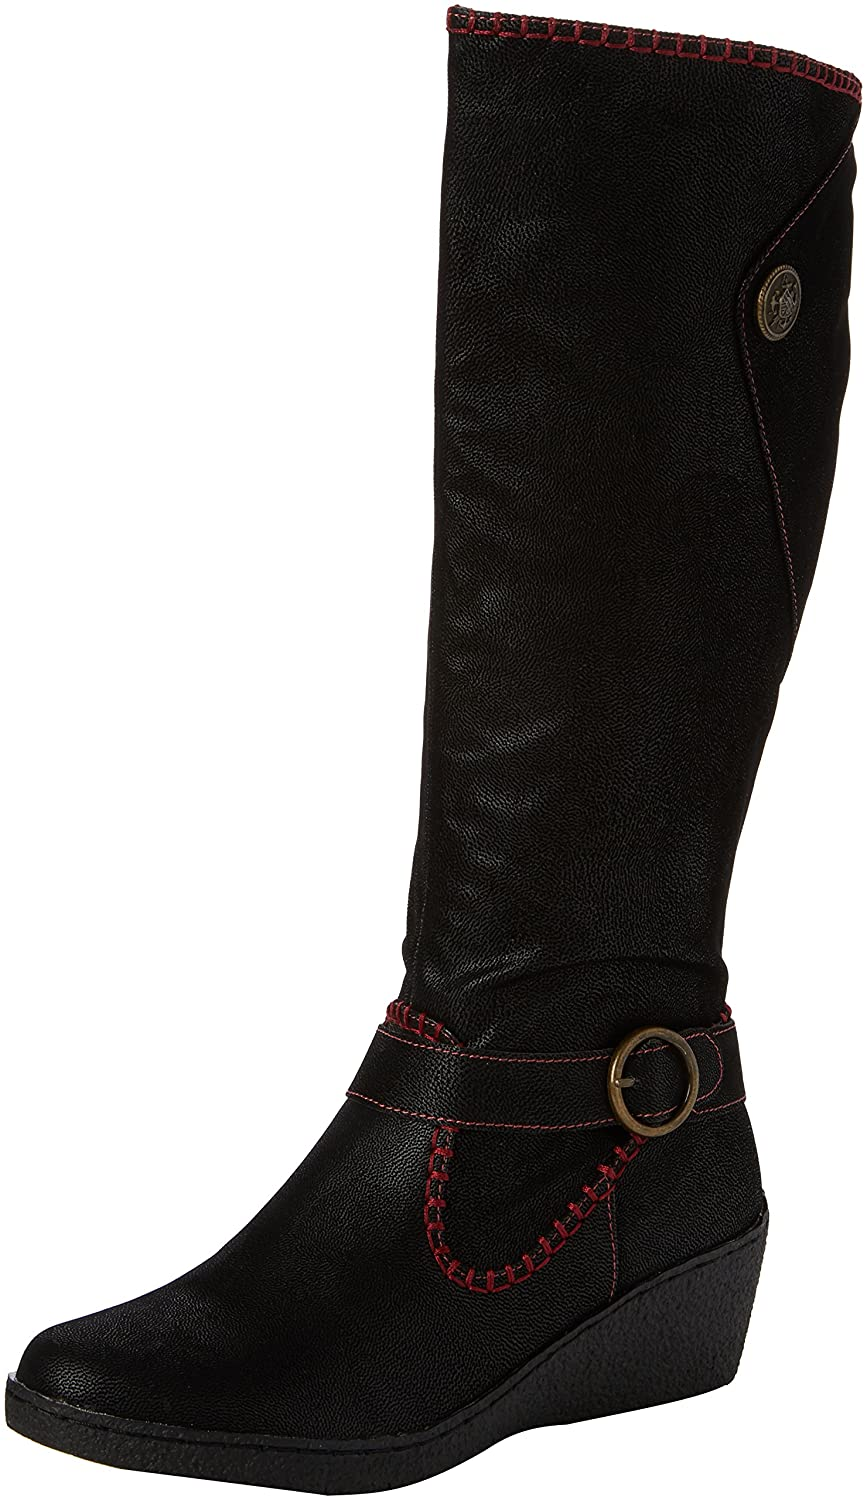 Joe Browns Distinctive Wedge Boots, Botas para Mujer42 EU|Negro (Black A)